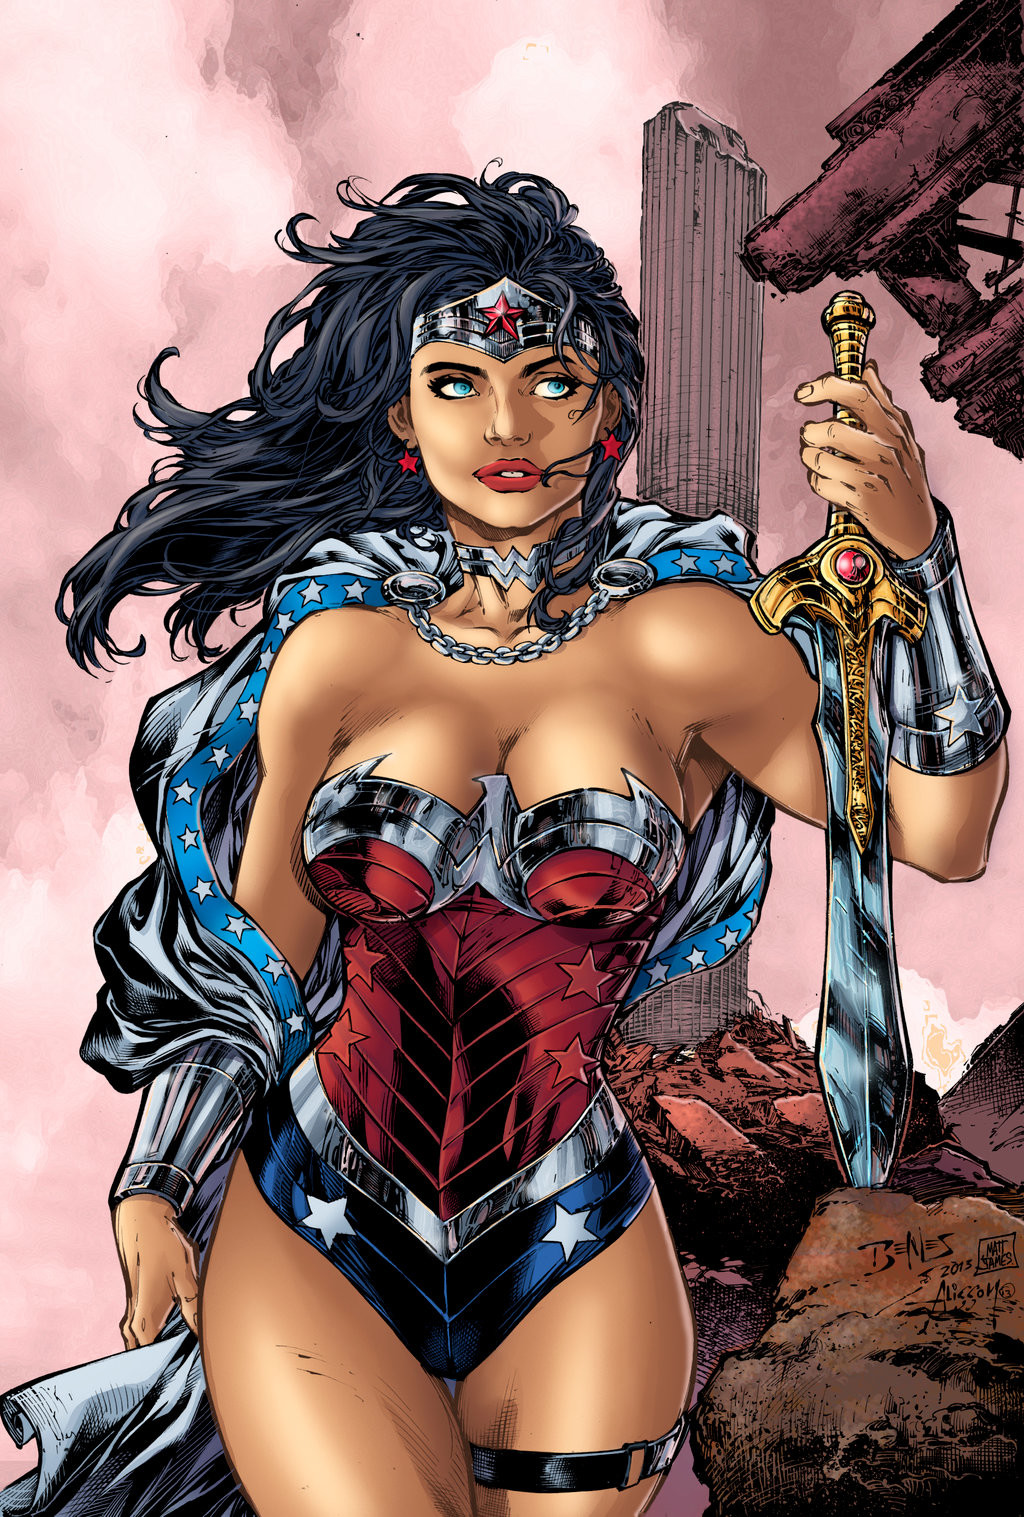 Matt james wonder woman by mattjamescomicarts daruvy7